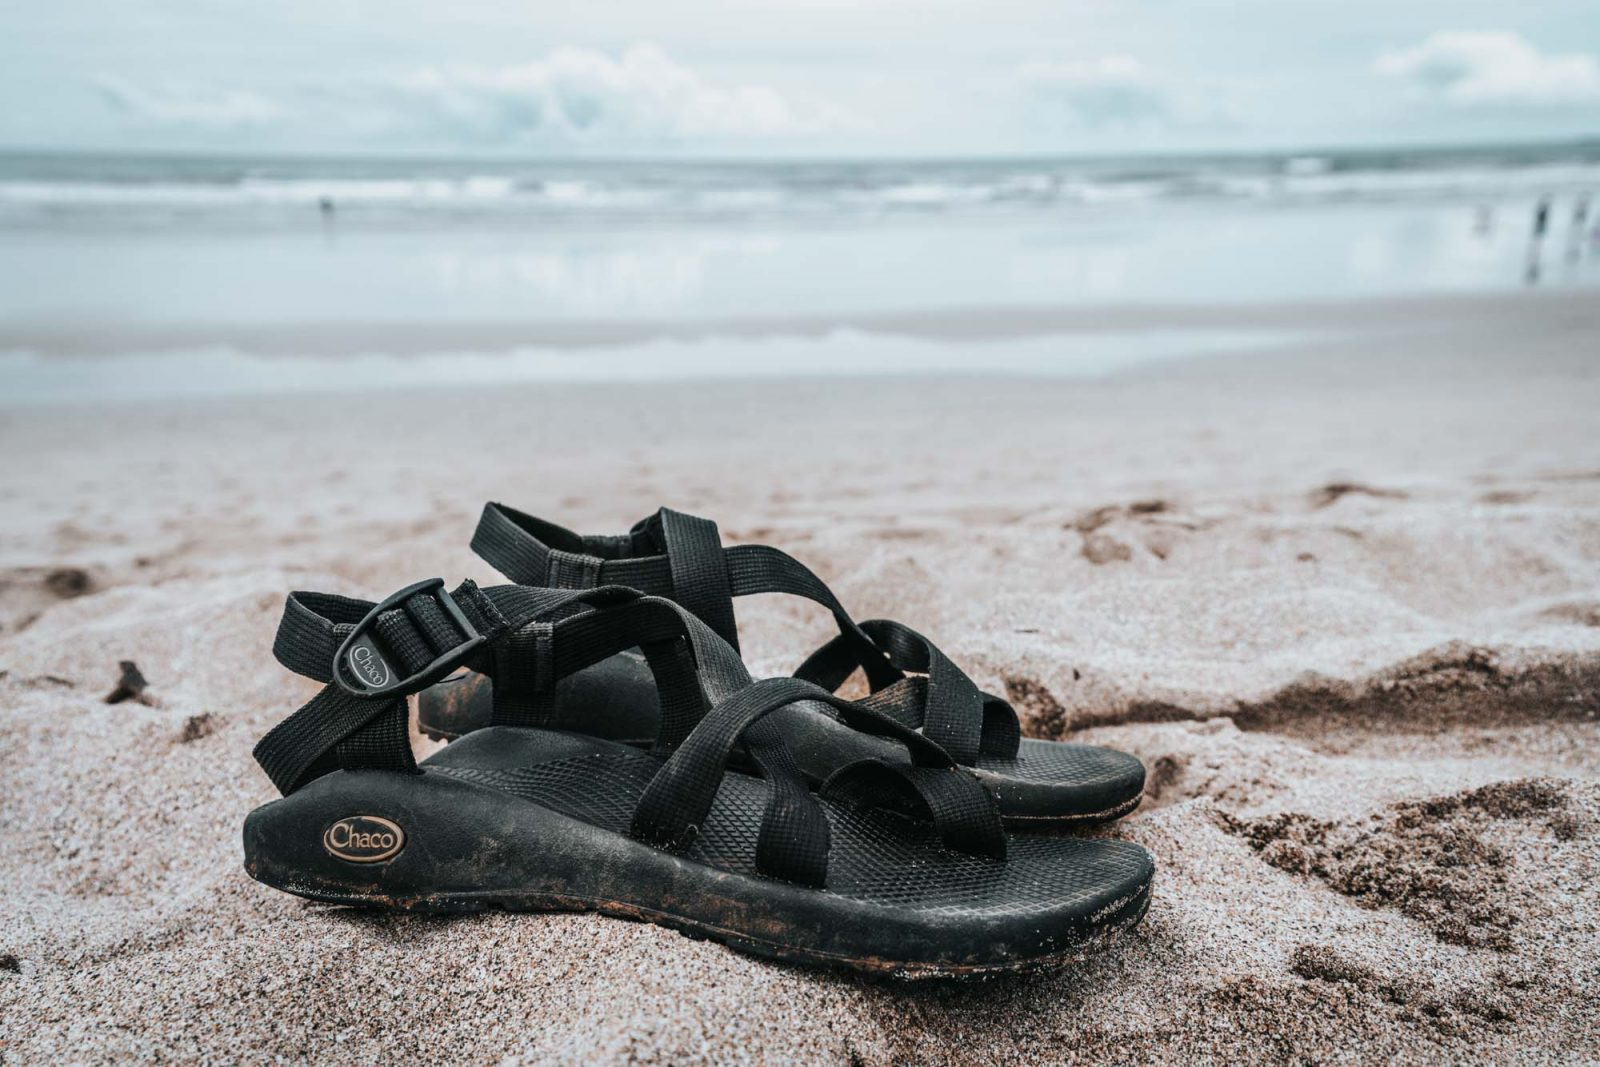 Chaco sandals an eco friendly gift